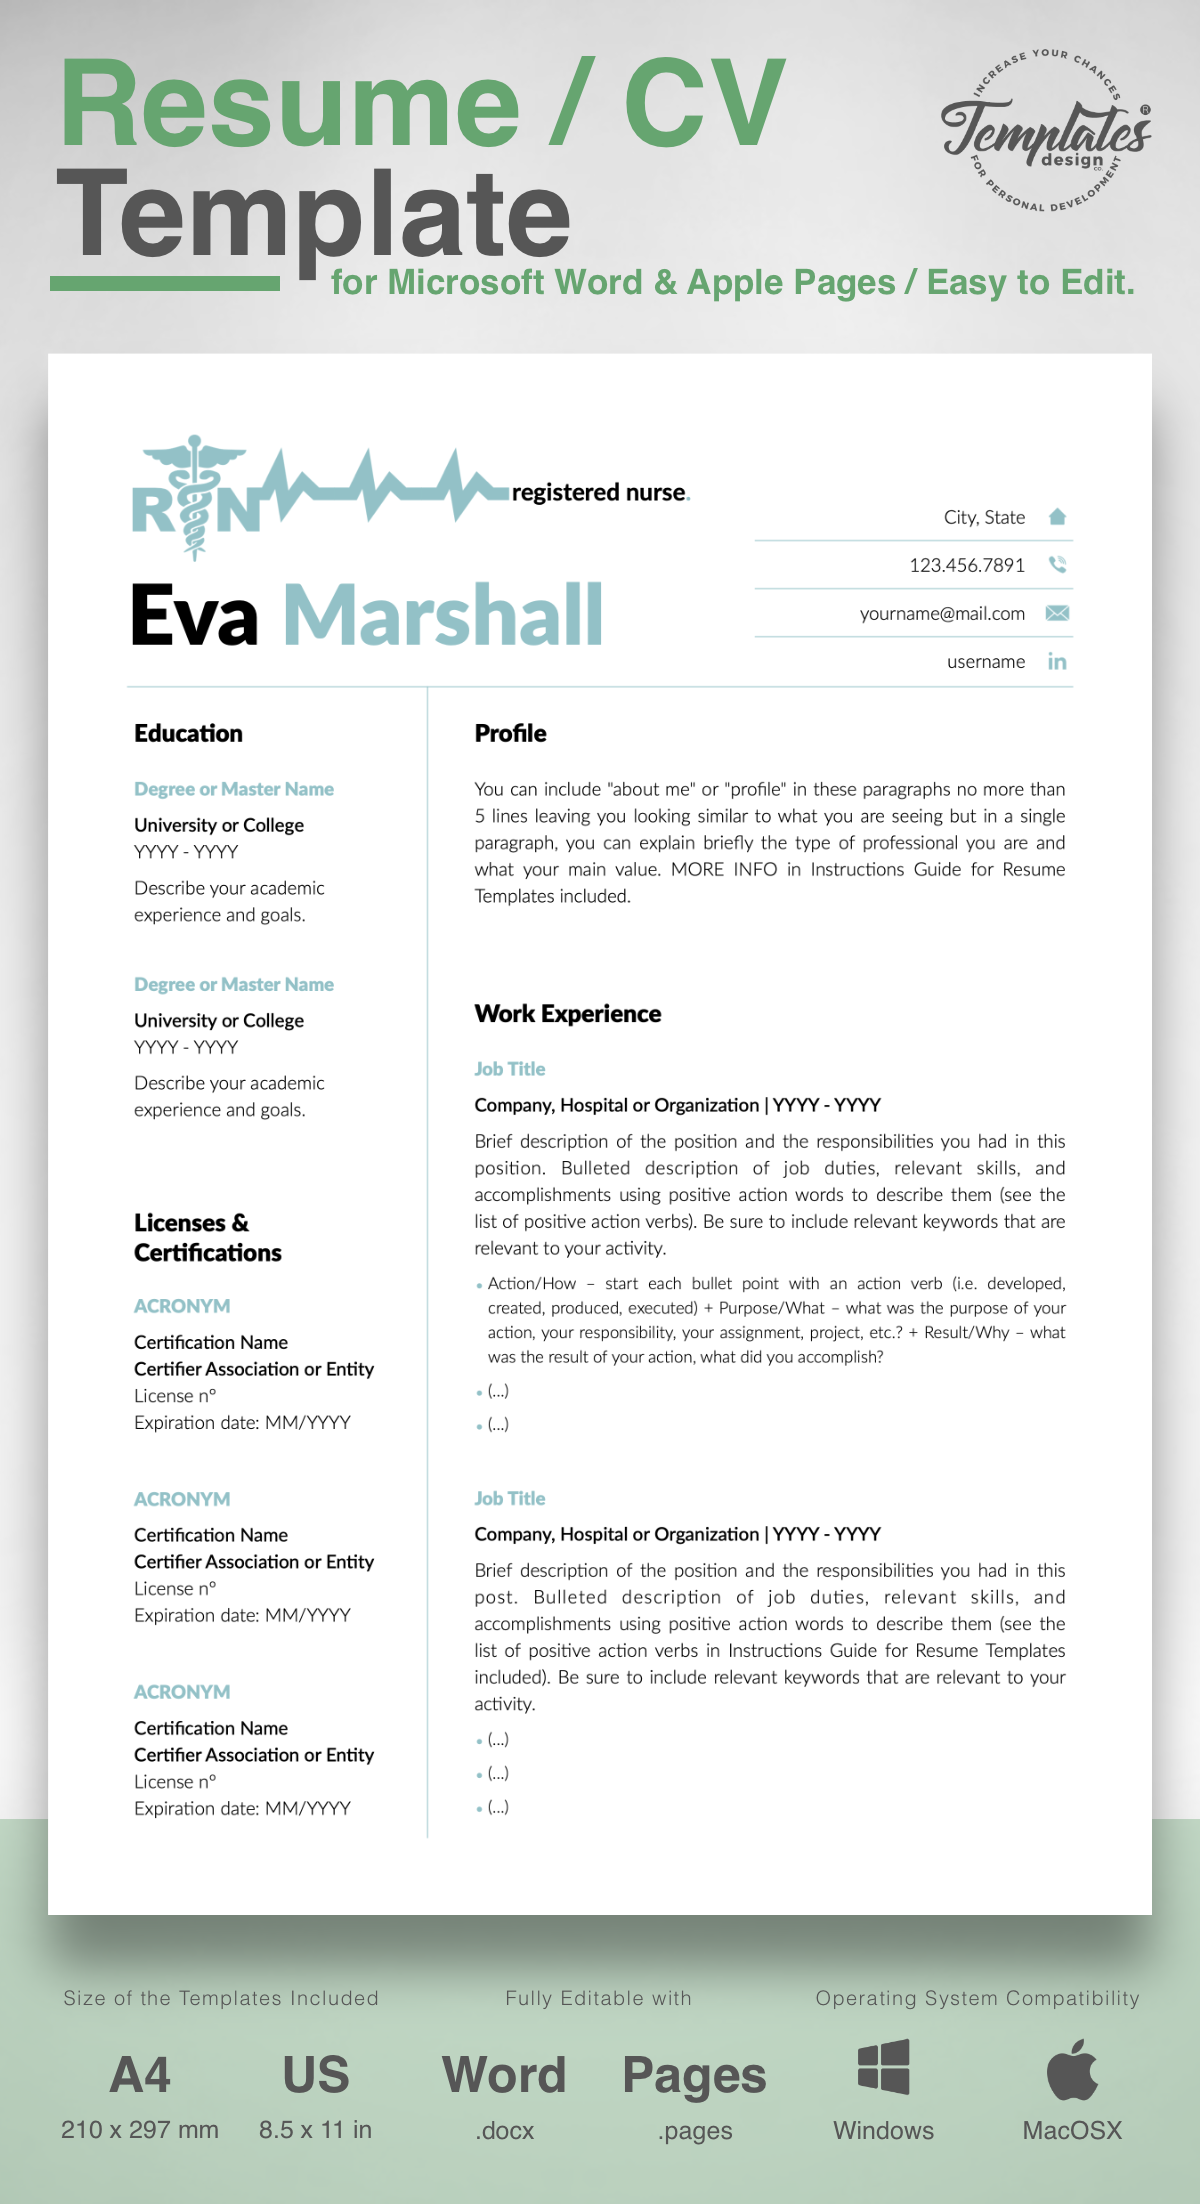 Eva Marshall Nurse Resume Cv Template For Word Pages Us Letter A4 Files 1 2 3 Page Resume Version Cover Letter References Cover Letter